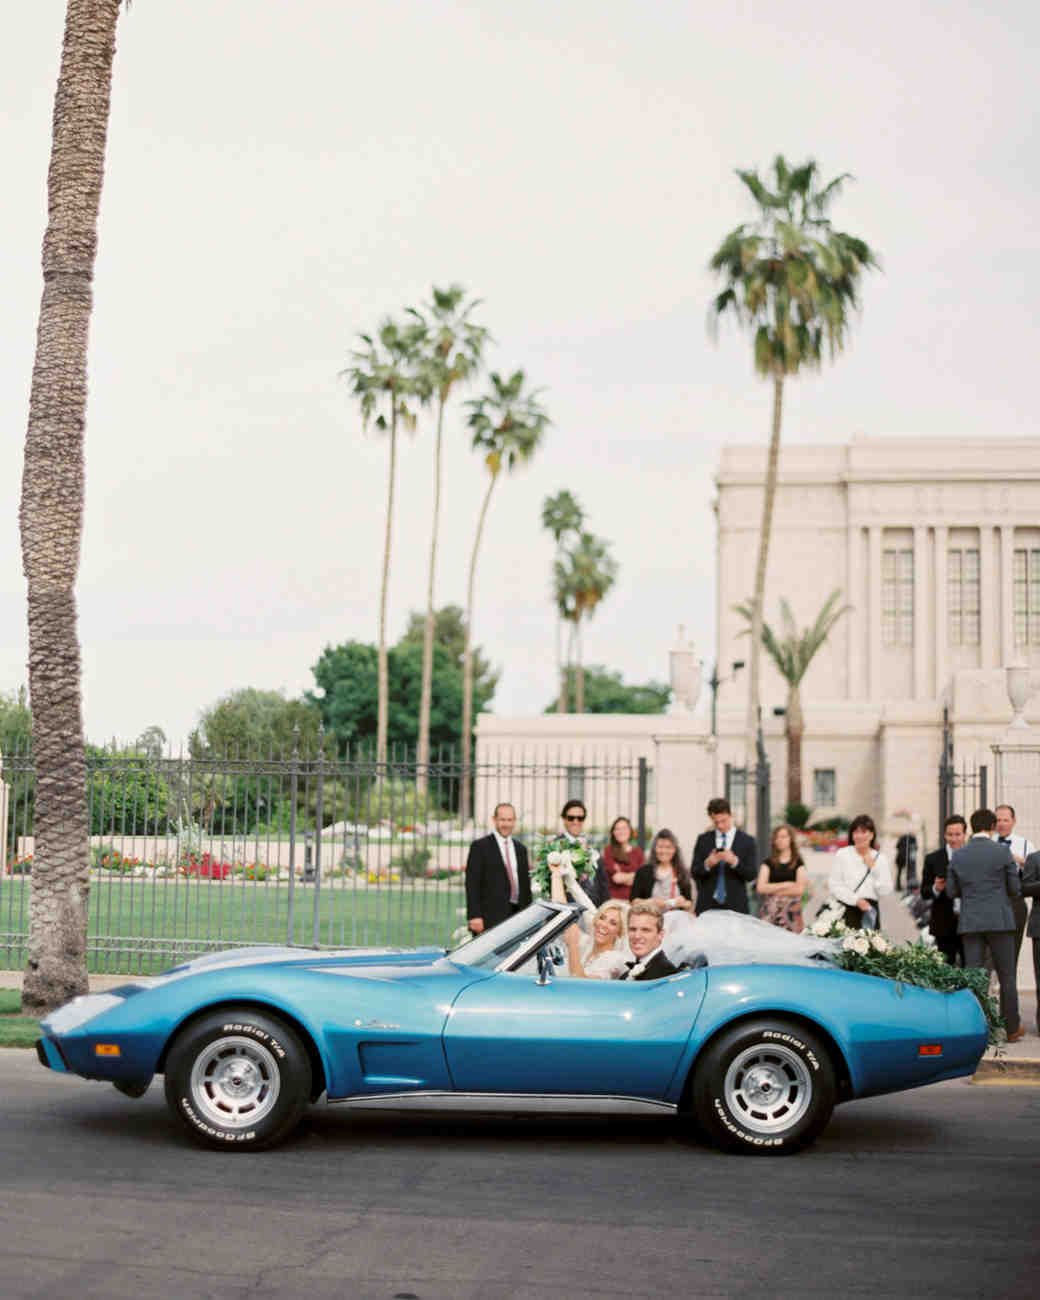 Wedding Getaway Car Ideas For Riding Away In Style